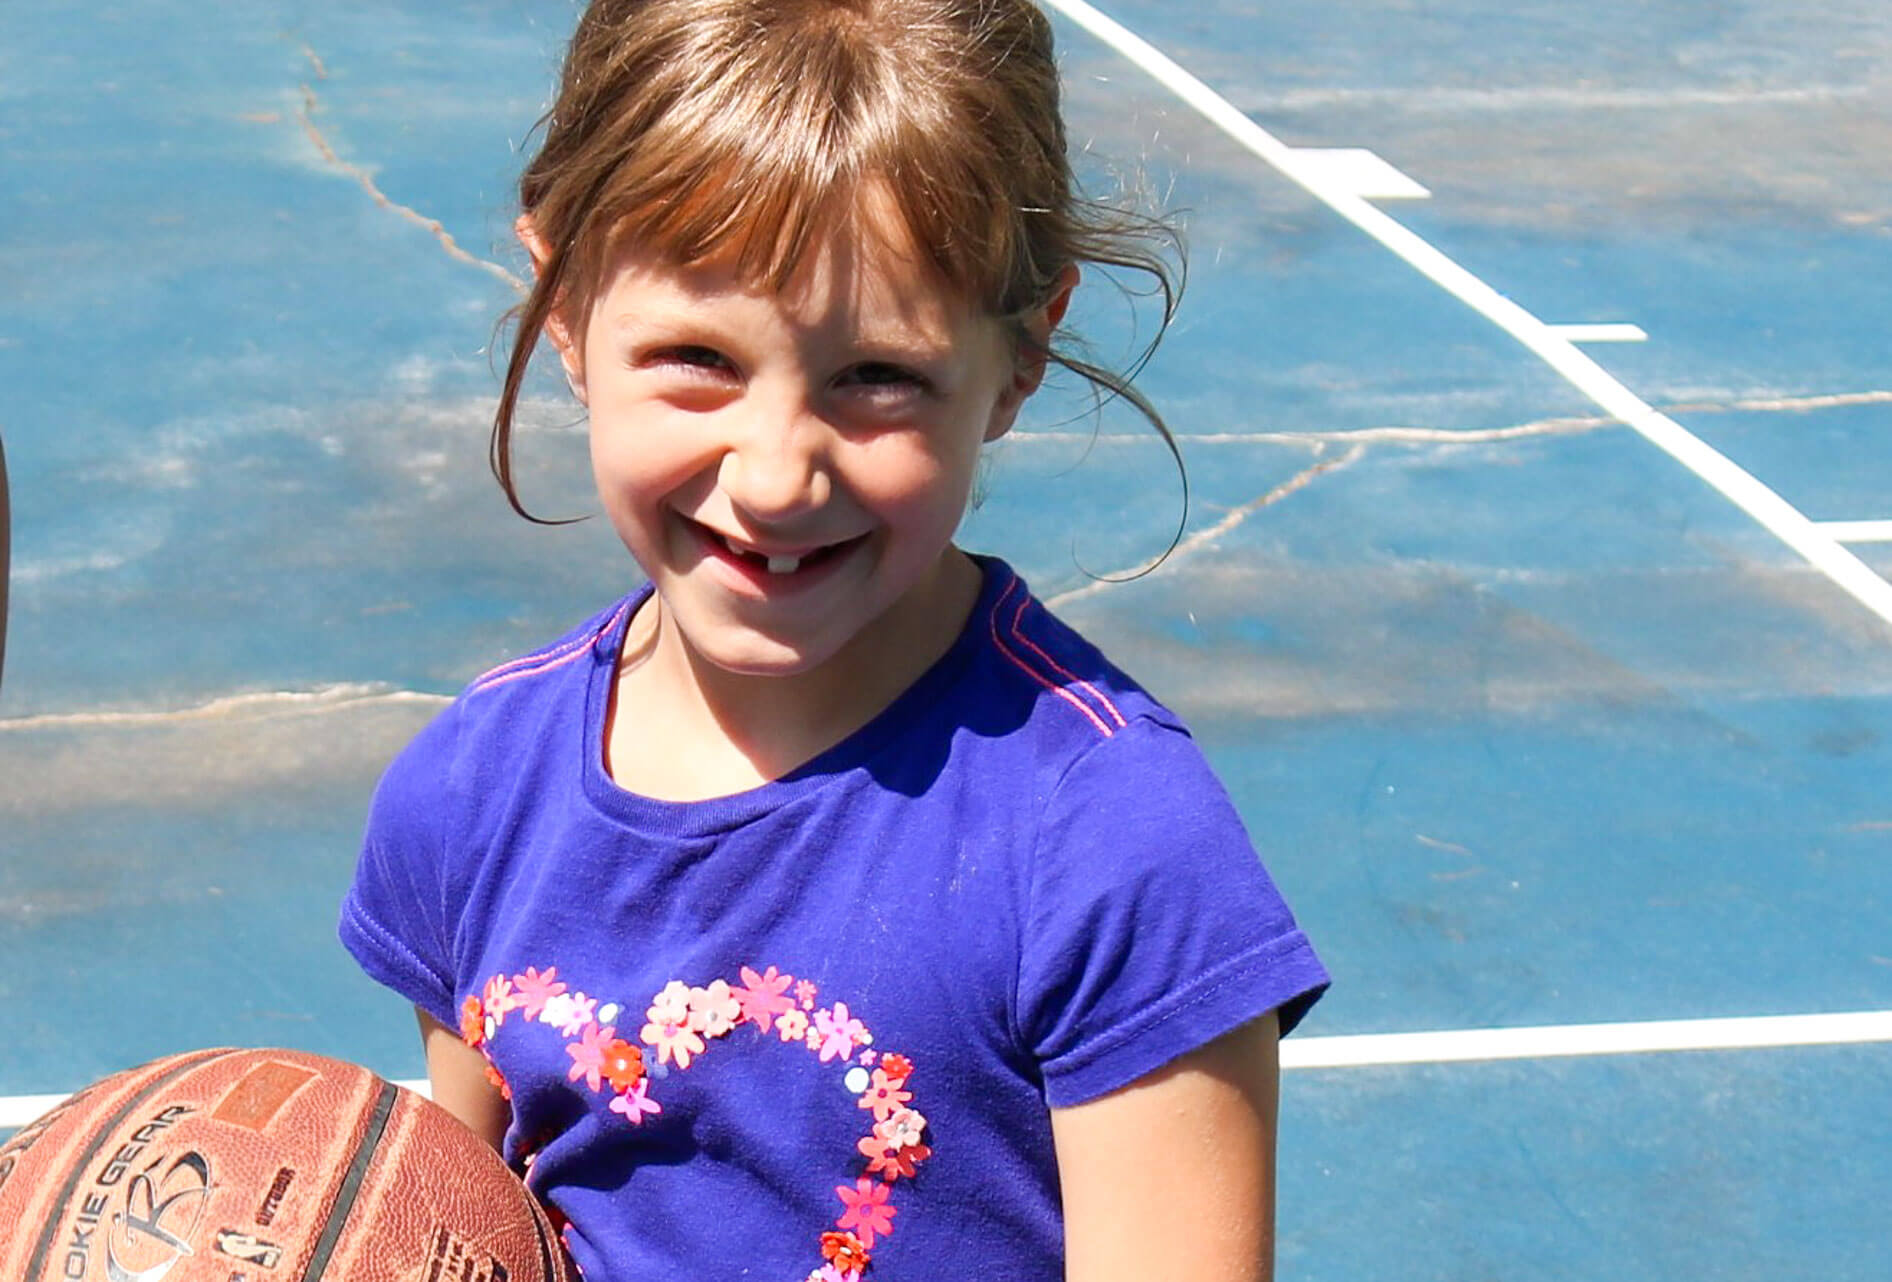 Smiling young camper holds basketball